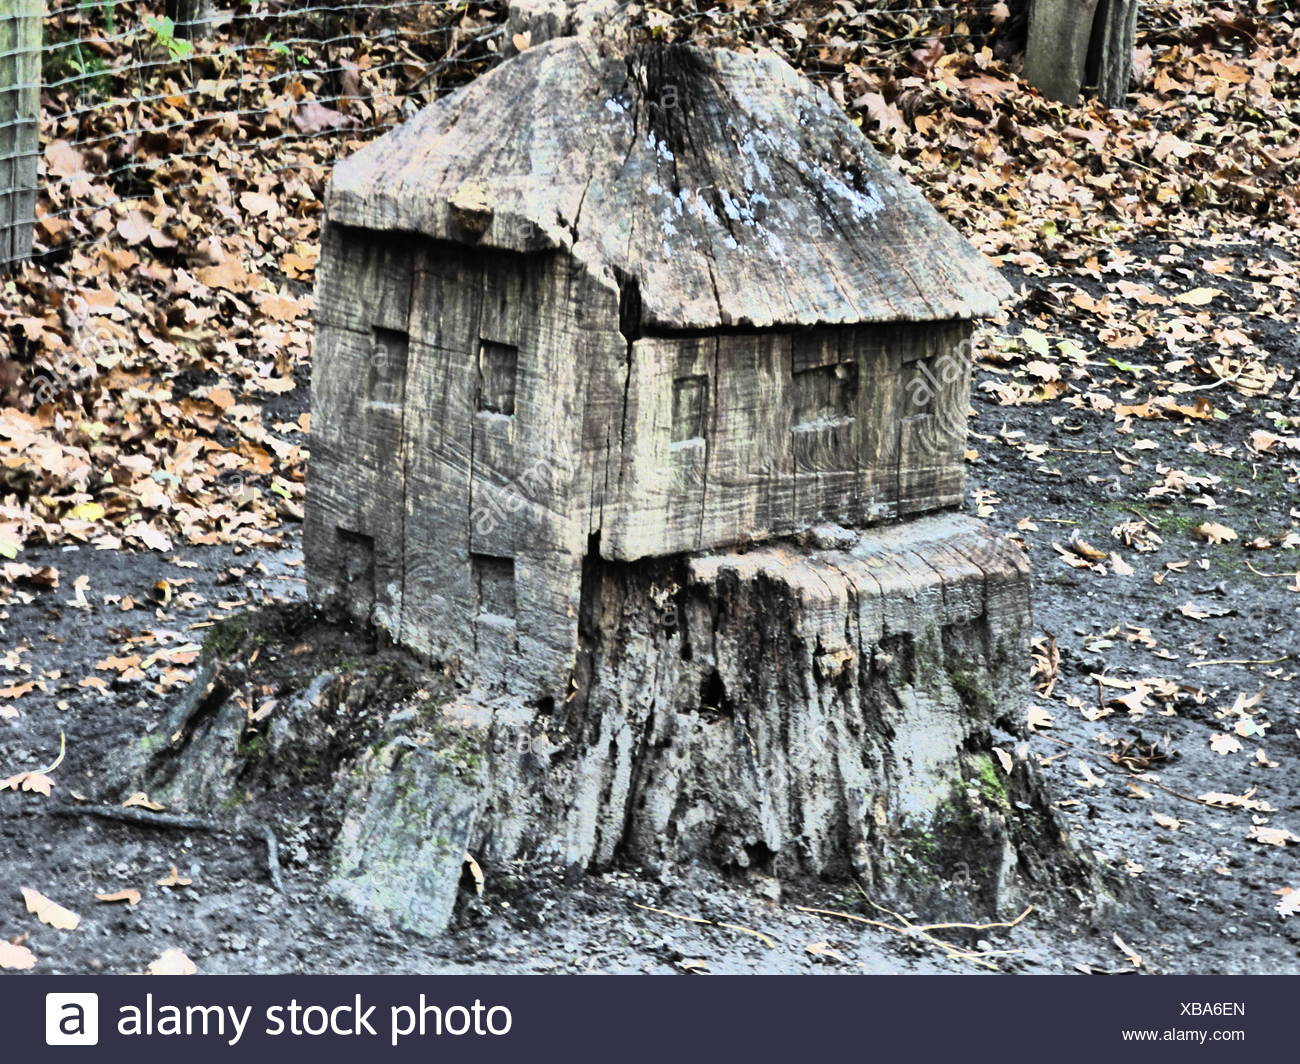 House Carved From Tree Stump - Stock Image